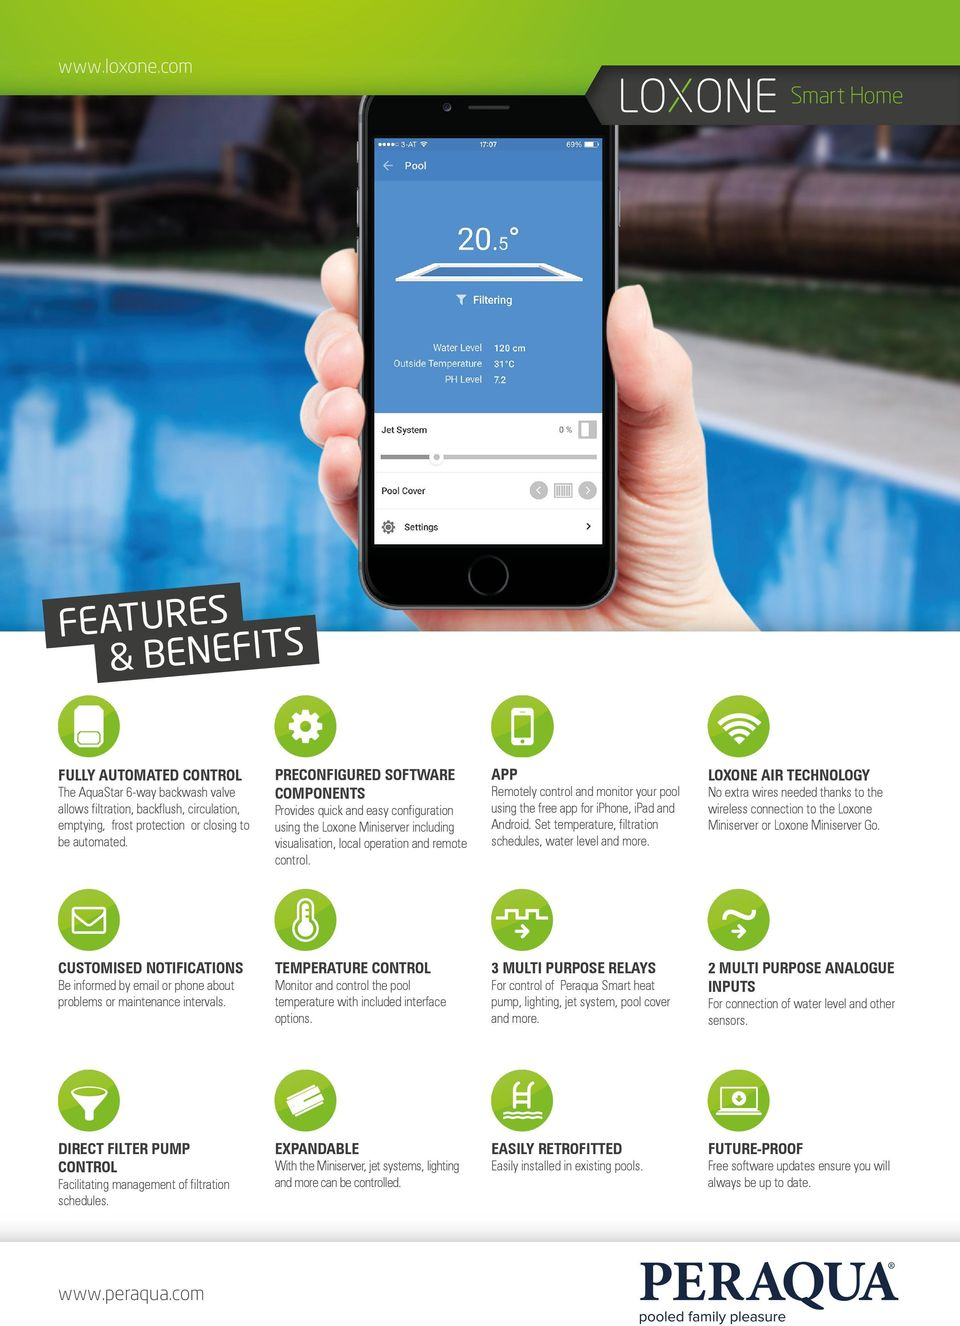 APP Remotely control and monitor your pool using the free app for iphone, ipad and Android. Set temperature, filtration schedules, water level and more.